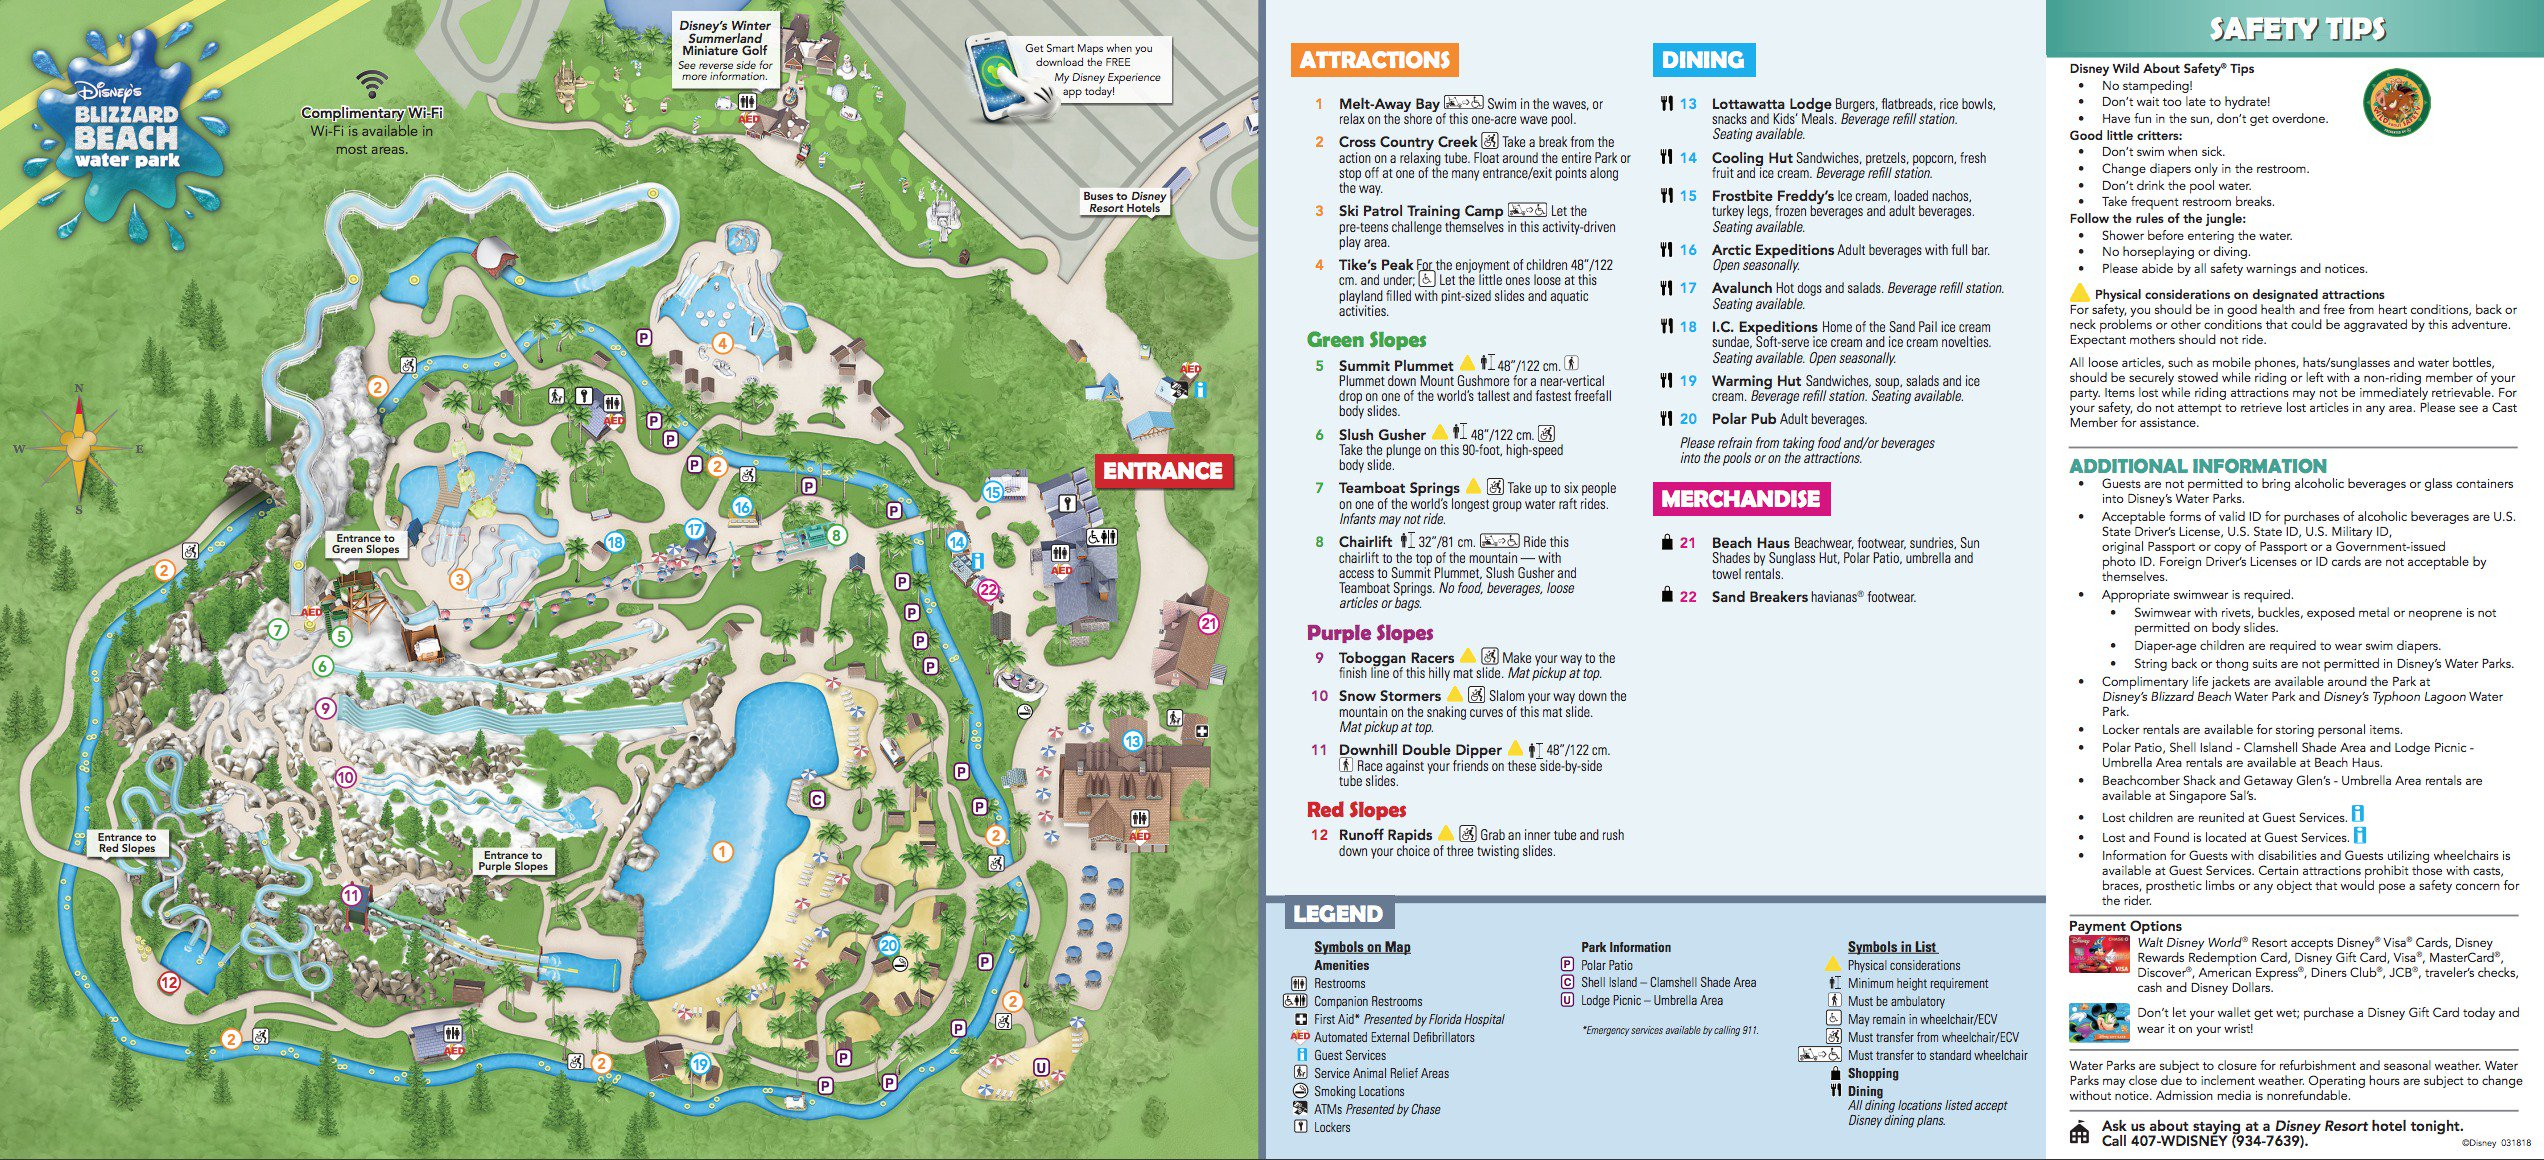 Disney's Blizzard Beach Water Park Map - Printable Disney World Maps 2017